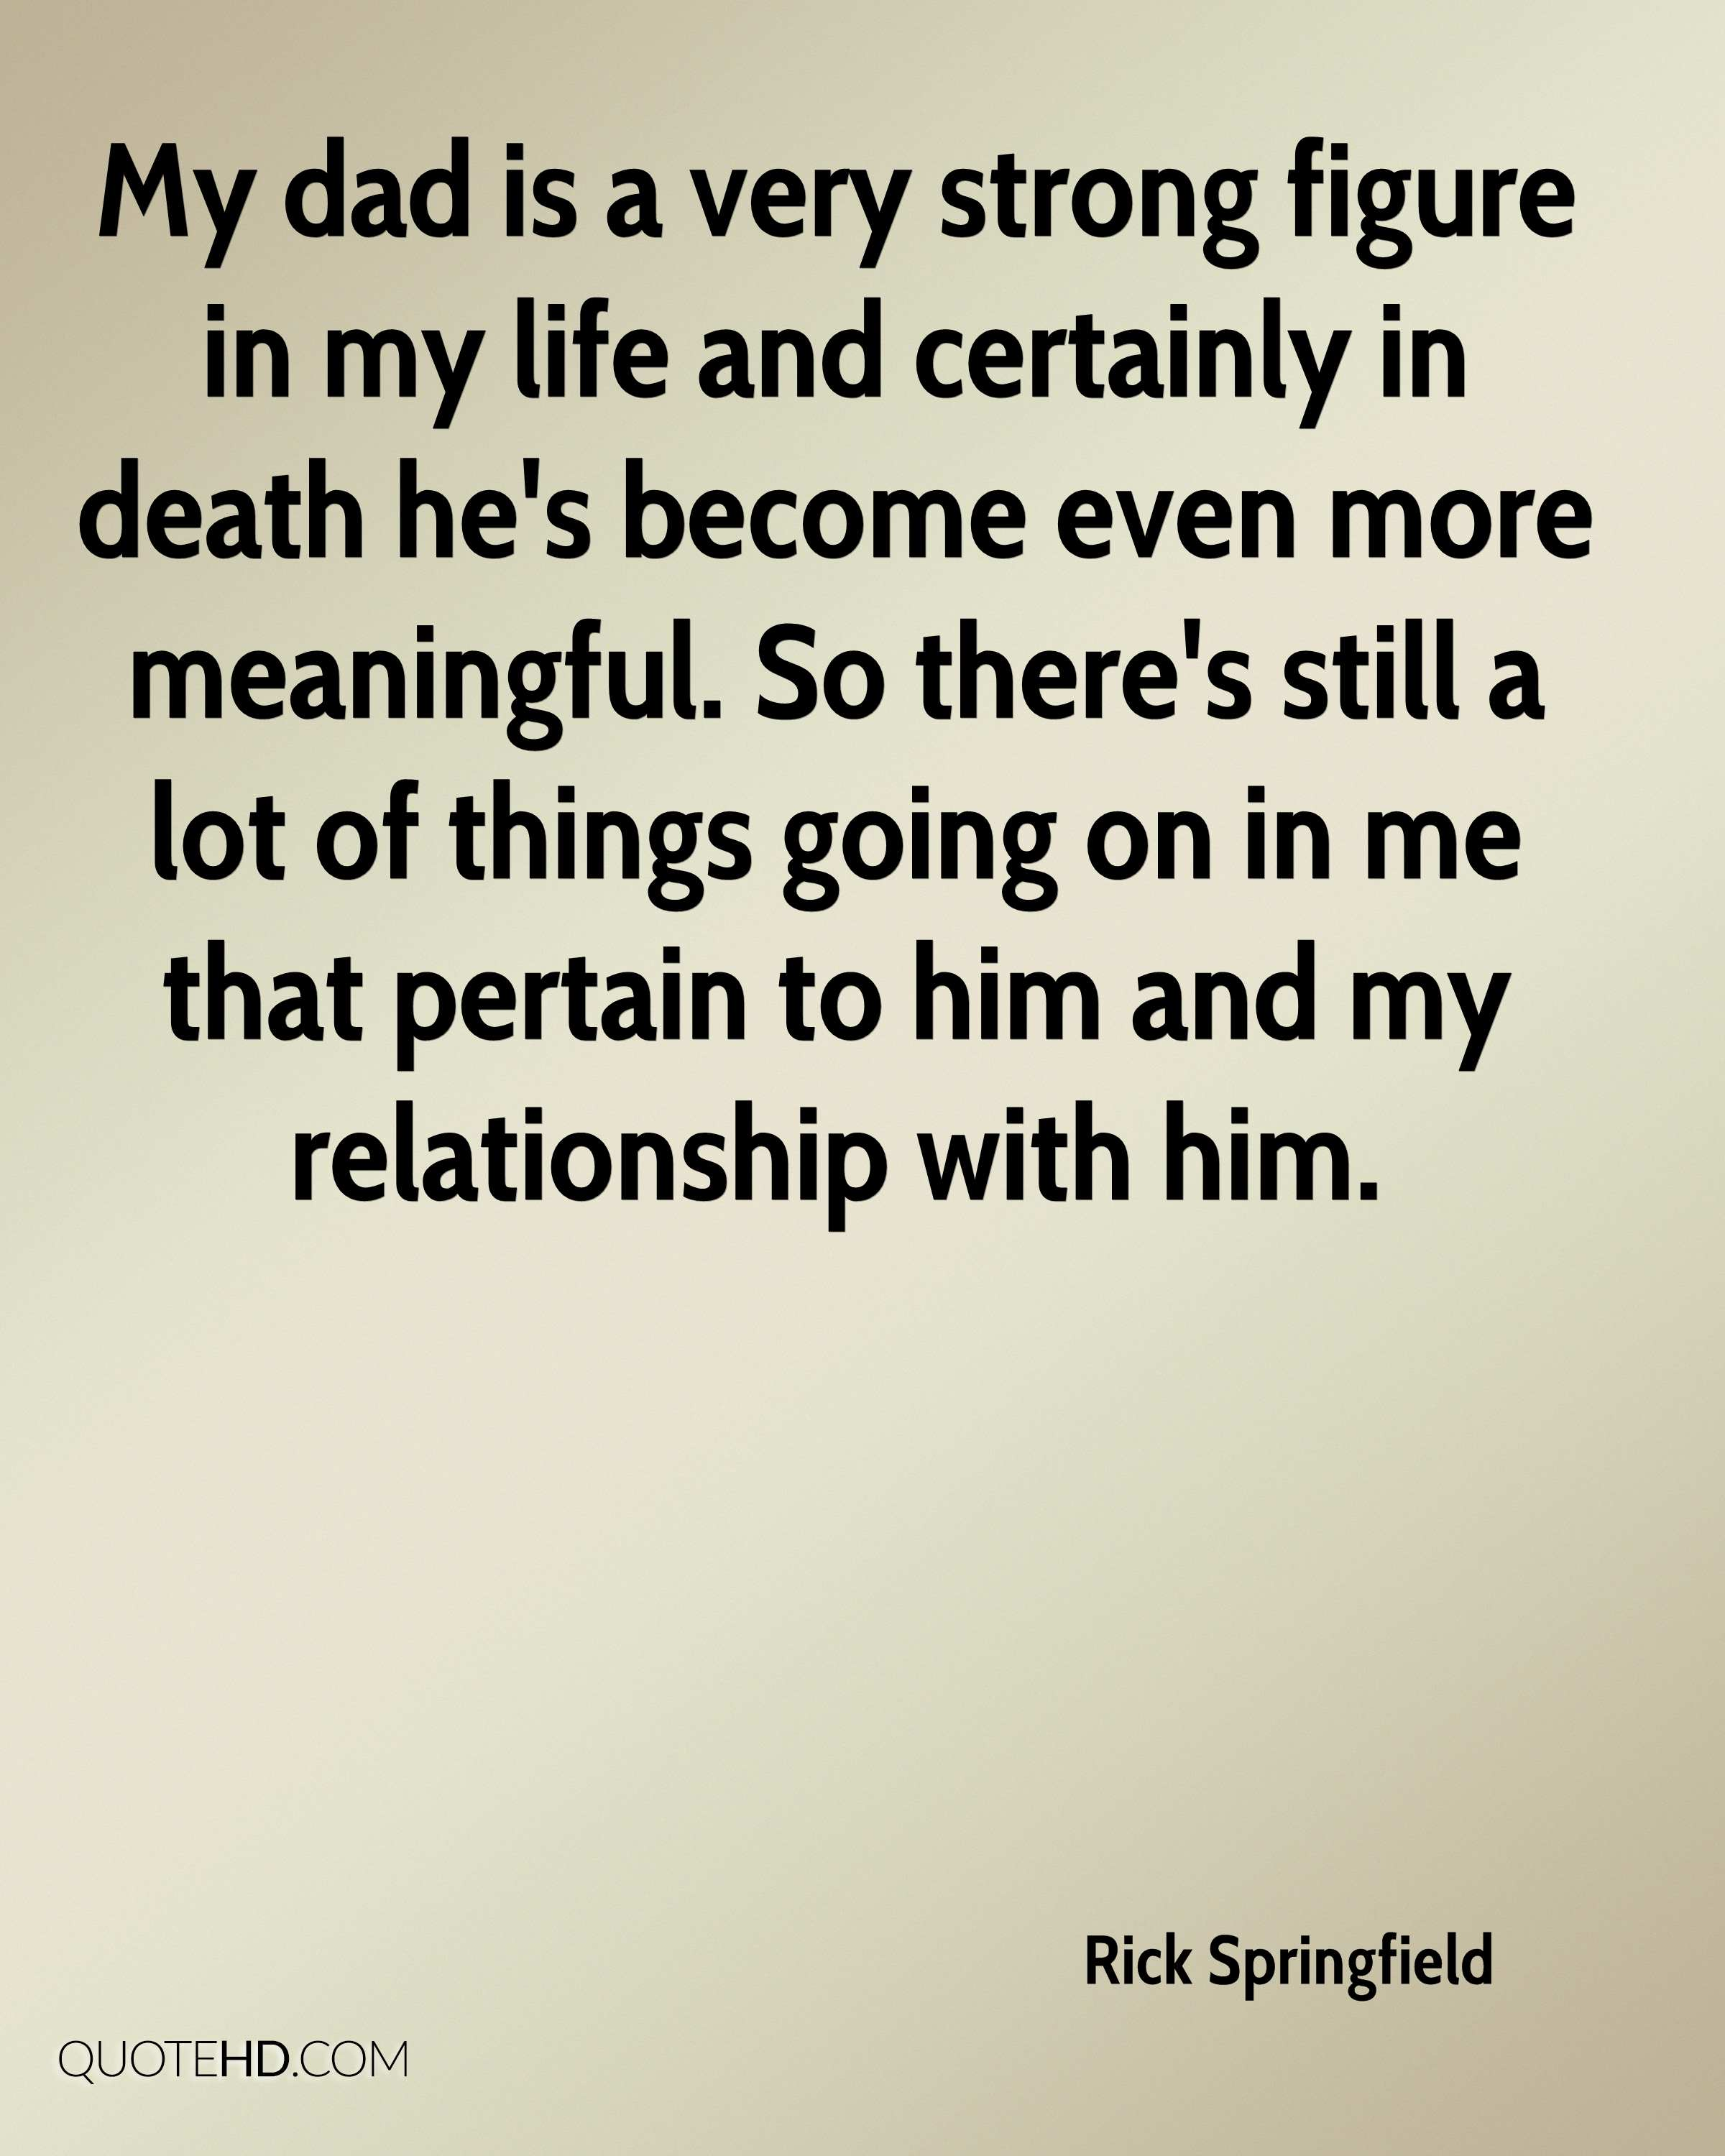 Meaningful Life Quotes Rick Springfield Death Quotes  Quotehd